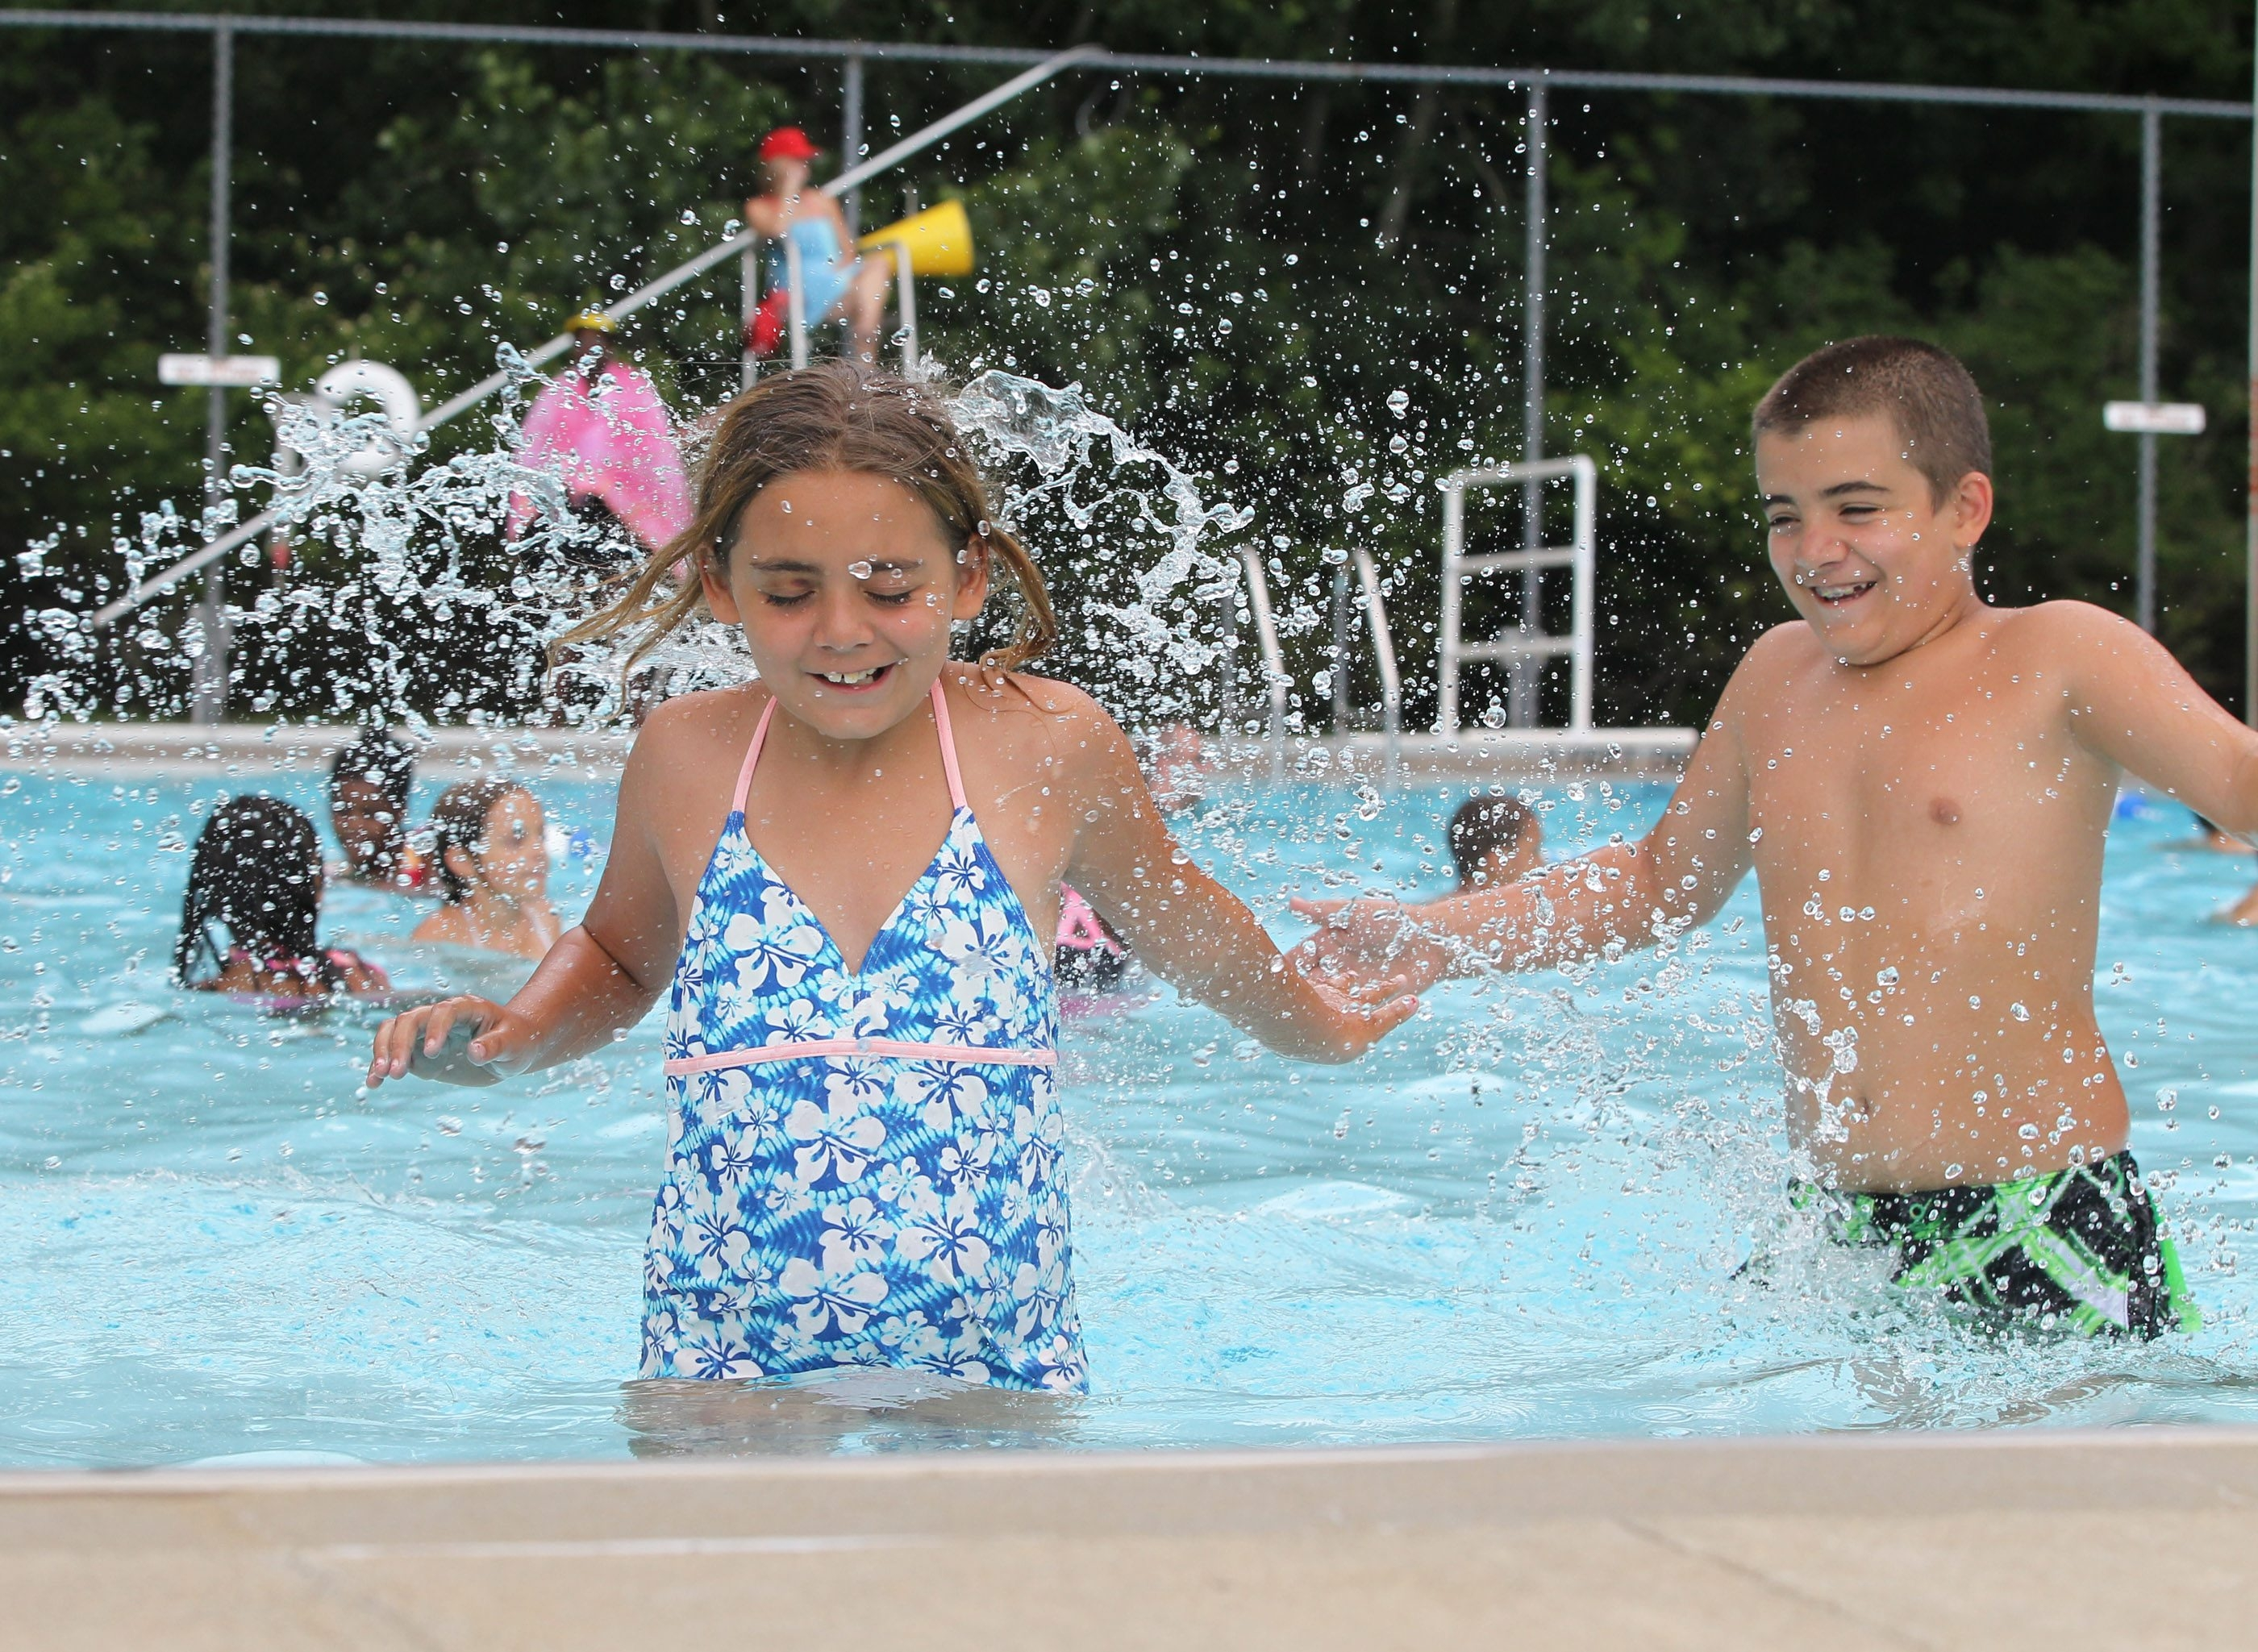 Angelina Jones, 9, and brother Eric, 11, enjoy the pool at Cradle Beach Camp on Friday. Both children, along with another brother, David, 12, are enrolled in SOAR, the camp's year-round mentoring program.